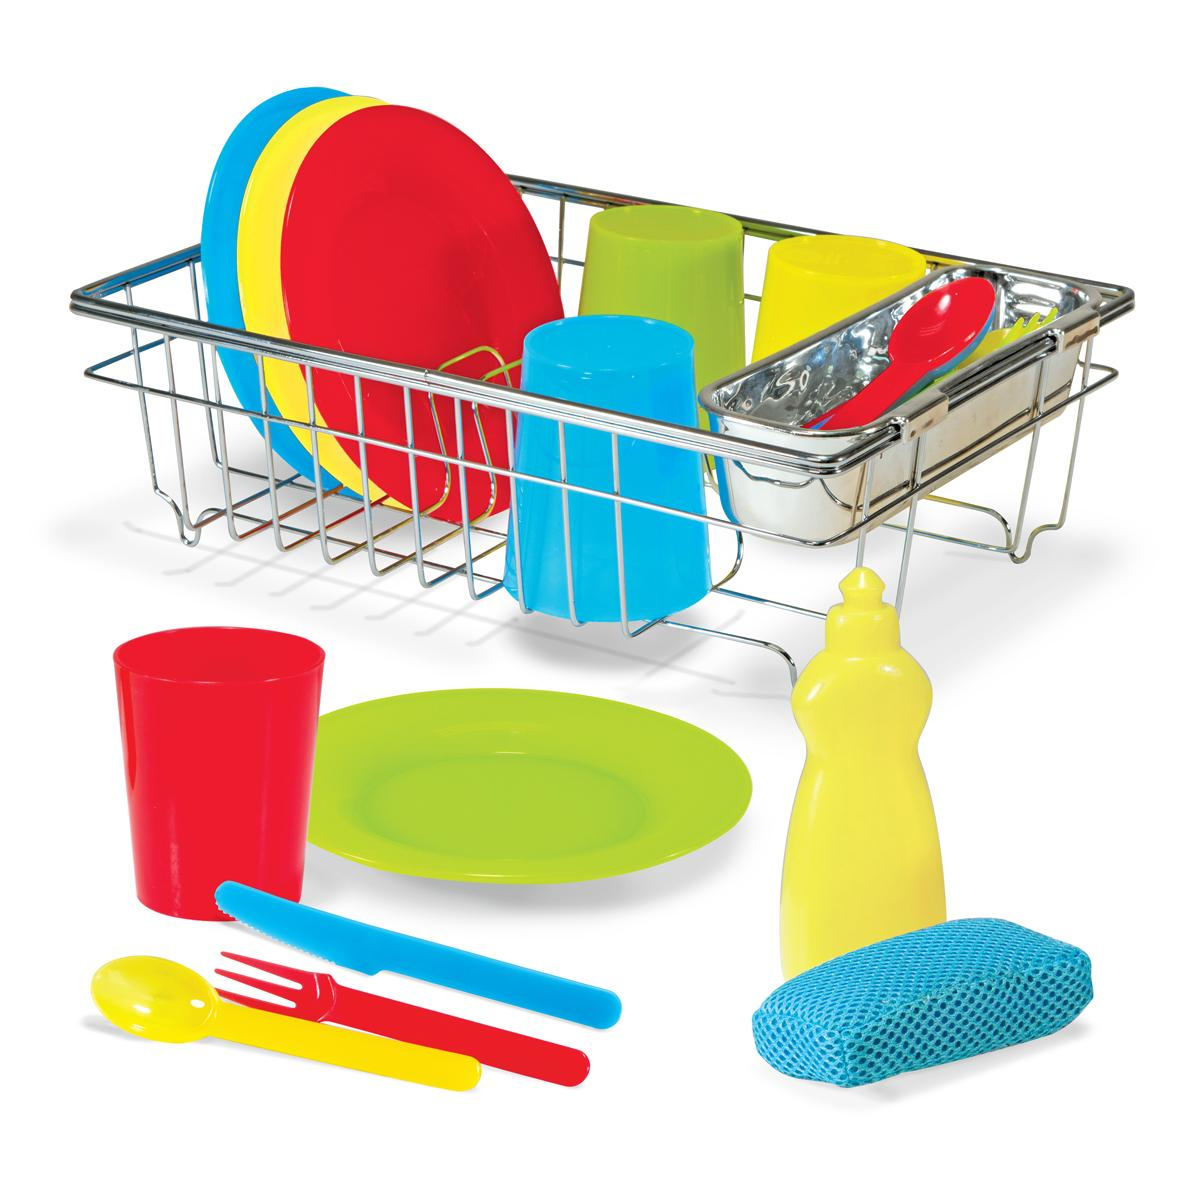 Melissa doug let 39 s play house wash and dry for Best kitchen set for 4 year old